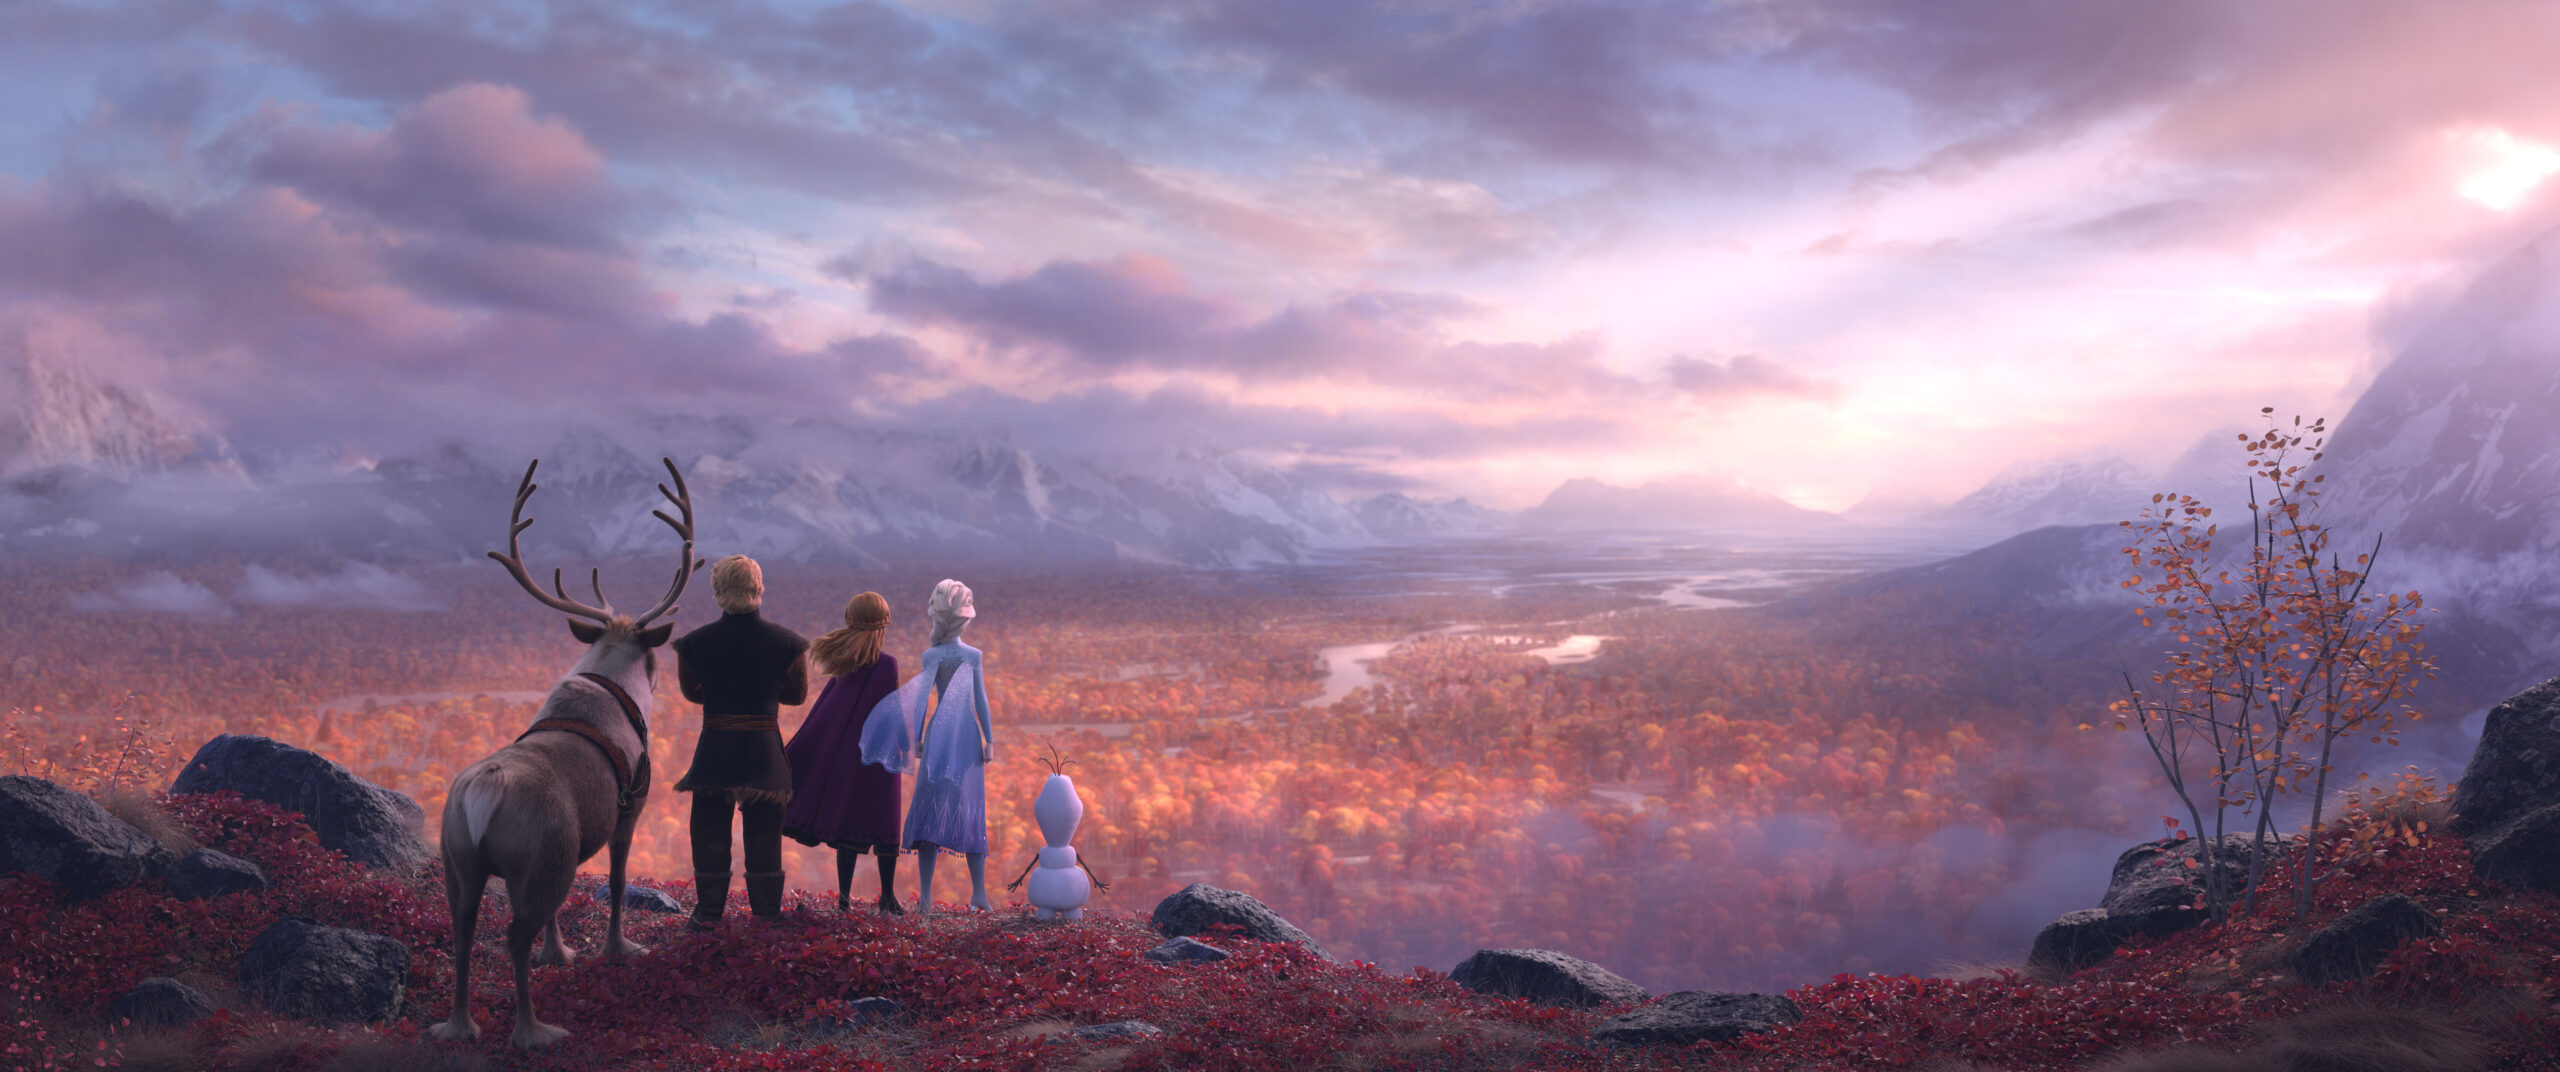 Frozen 2 Review: Is it scary?